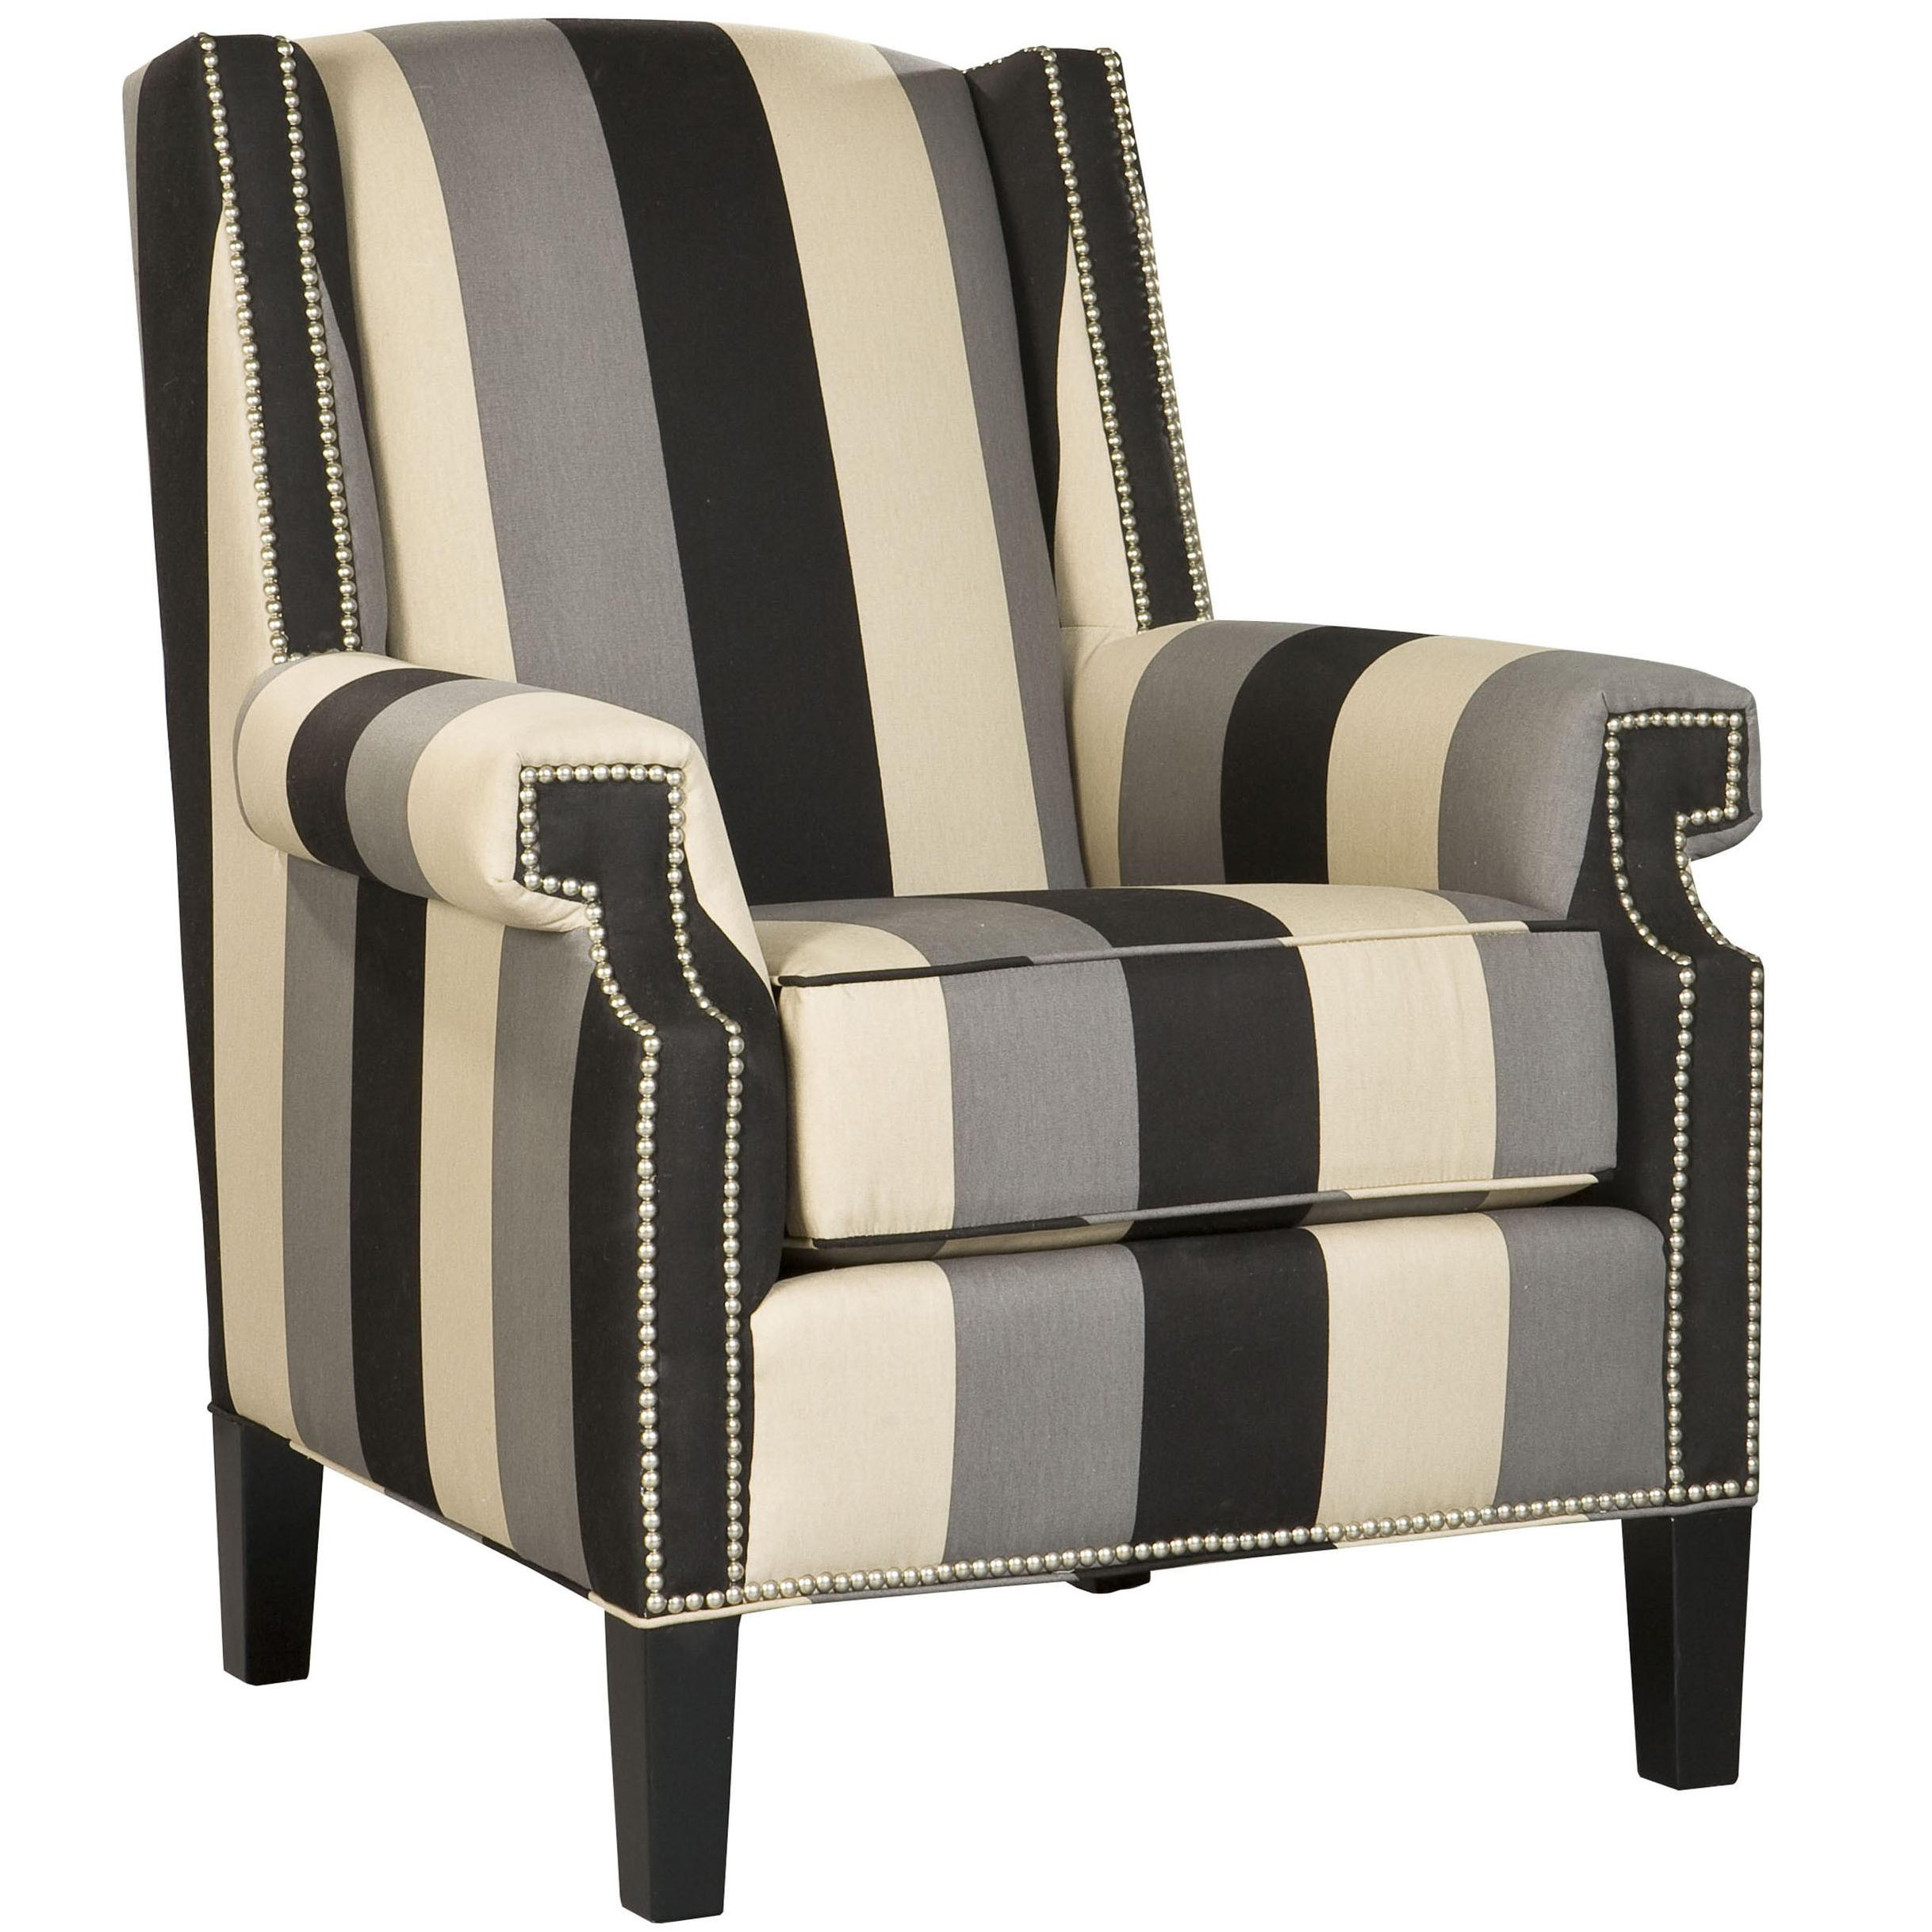 Rodman Contempary Accent Chair by Hekman at Esprit Decor Home Furnishings